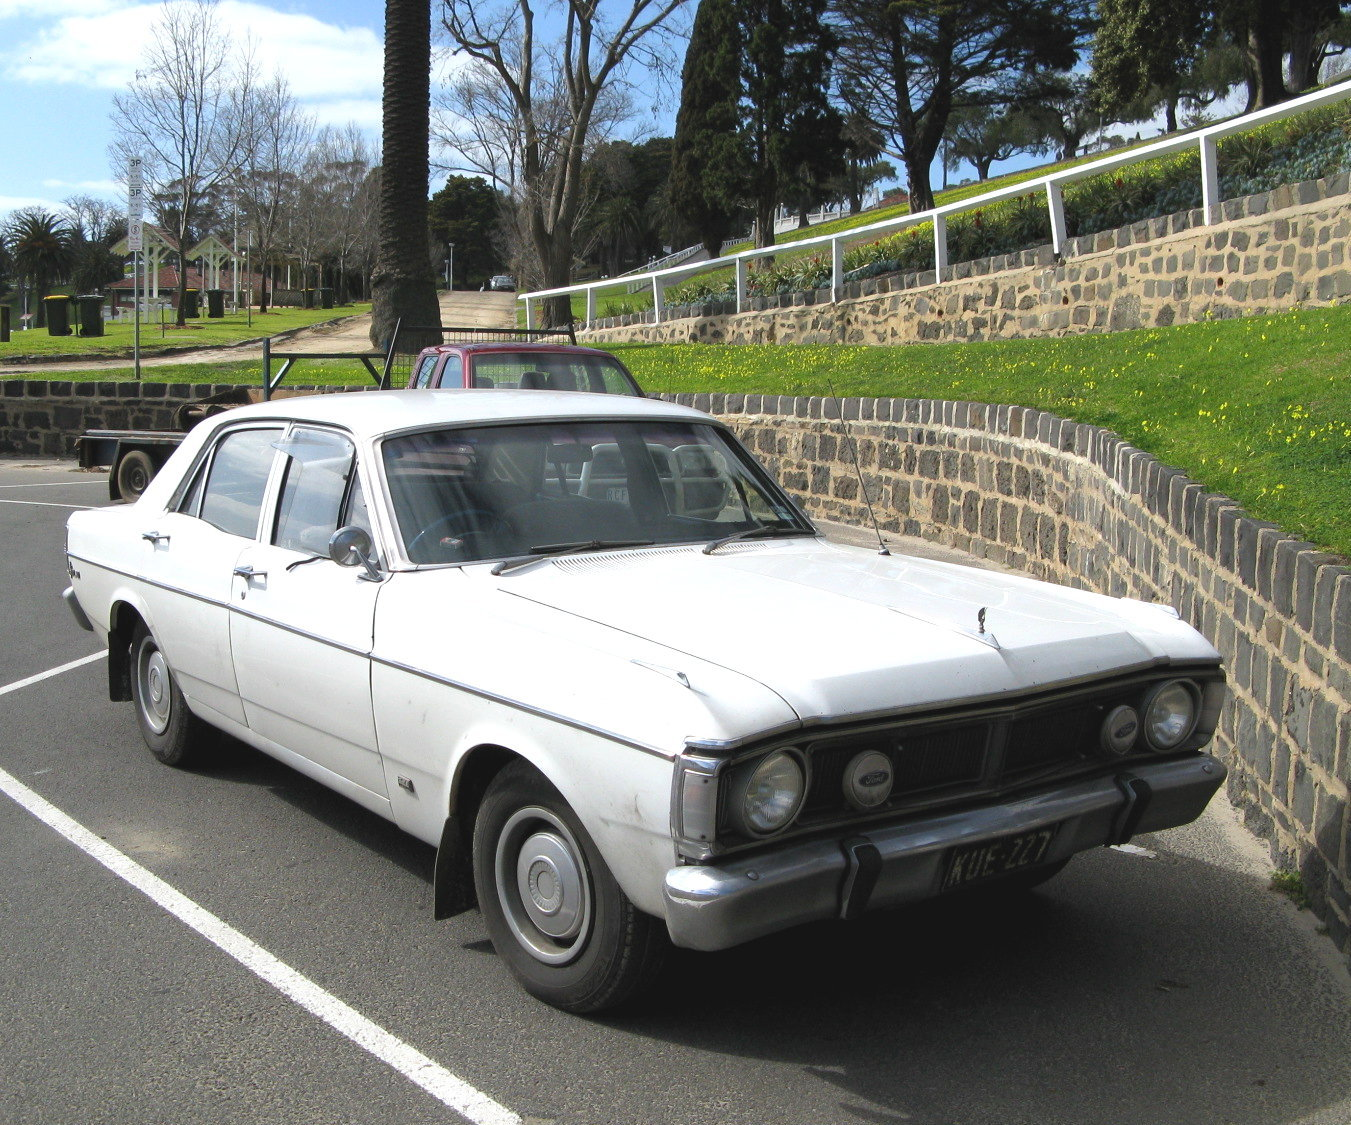 Main article: Ford XY Falcon